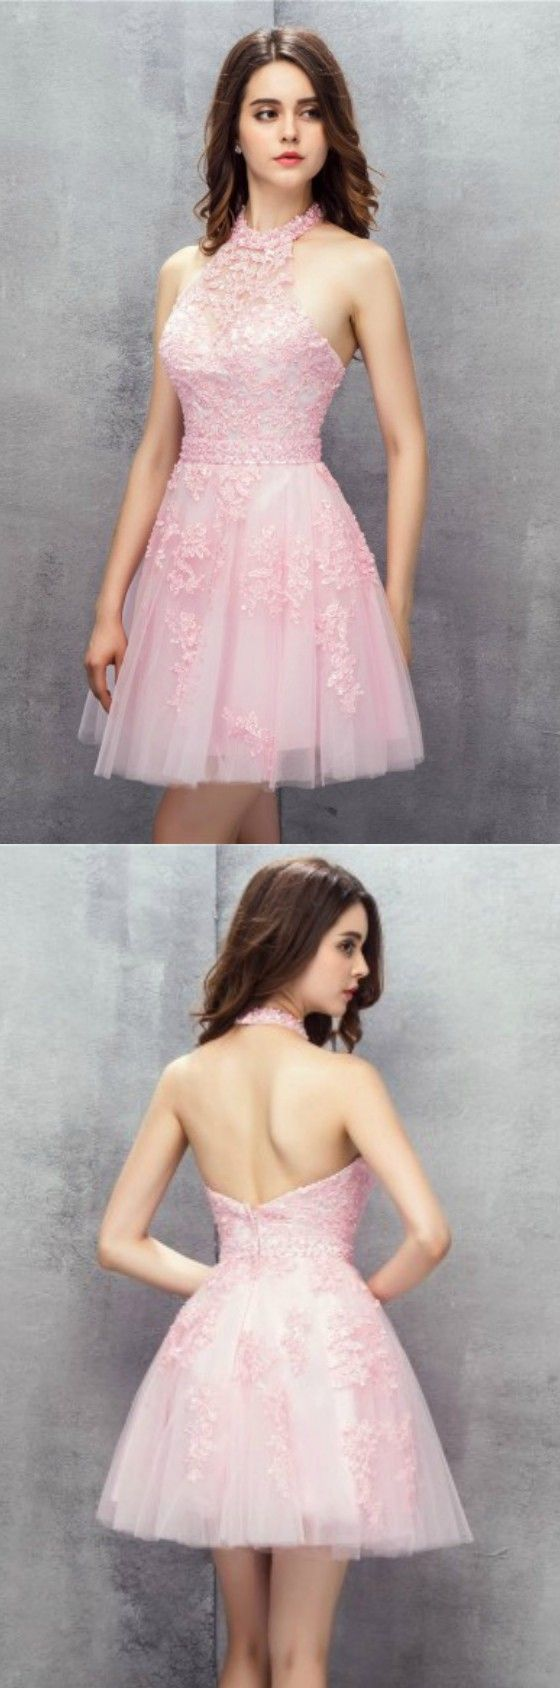 Pink Short Halter Lace Tulle Prom Dress Homecoming Dress